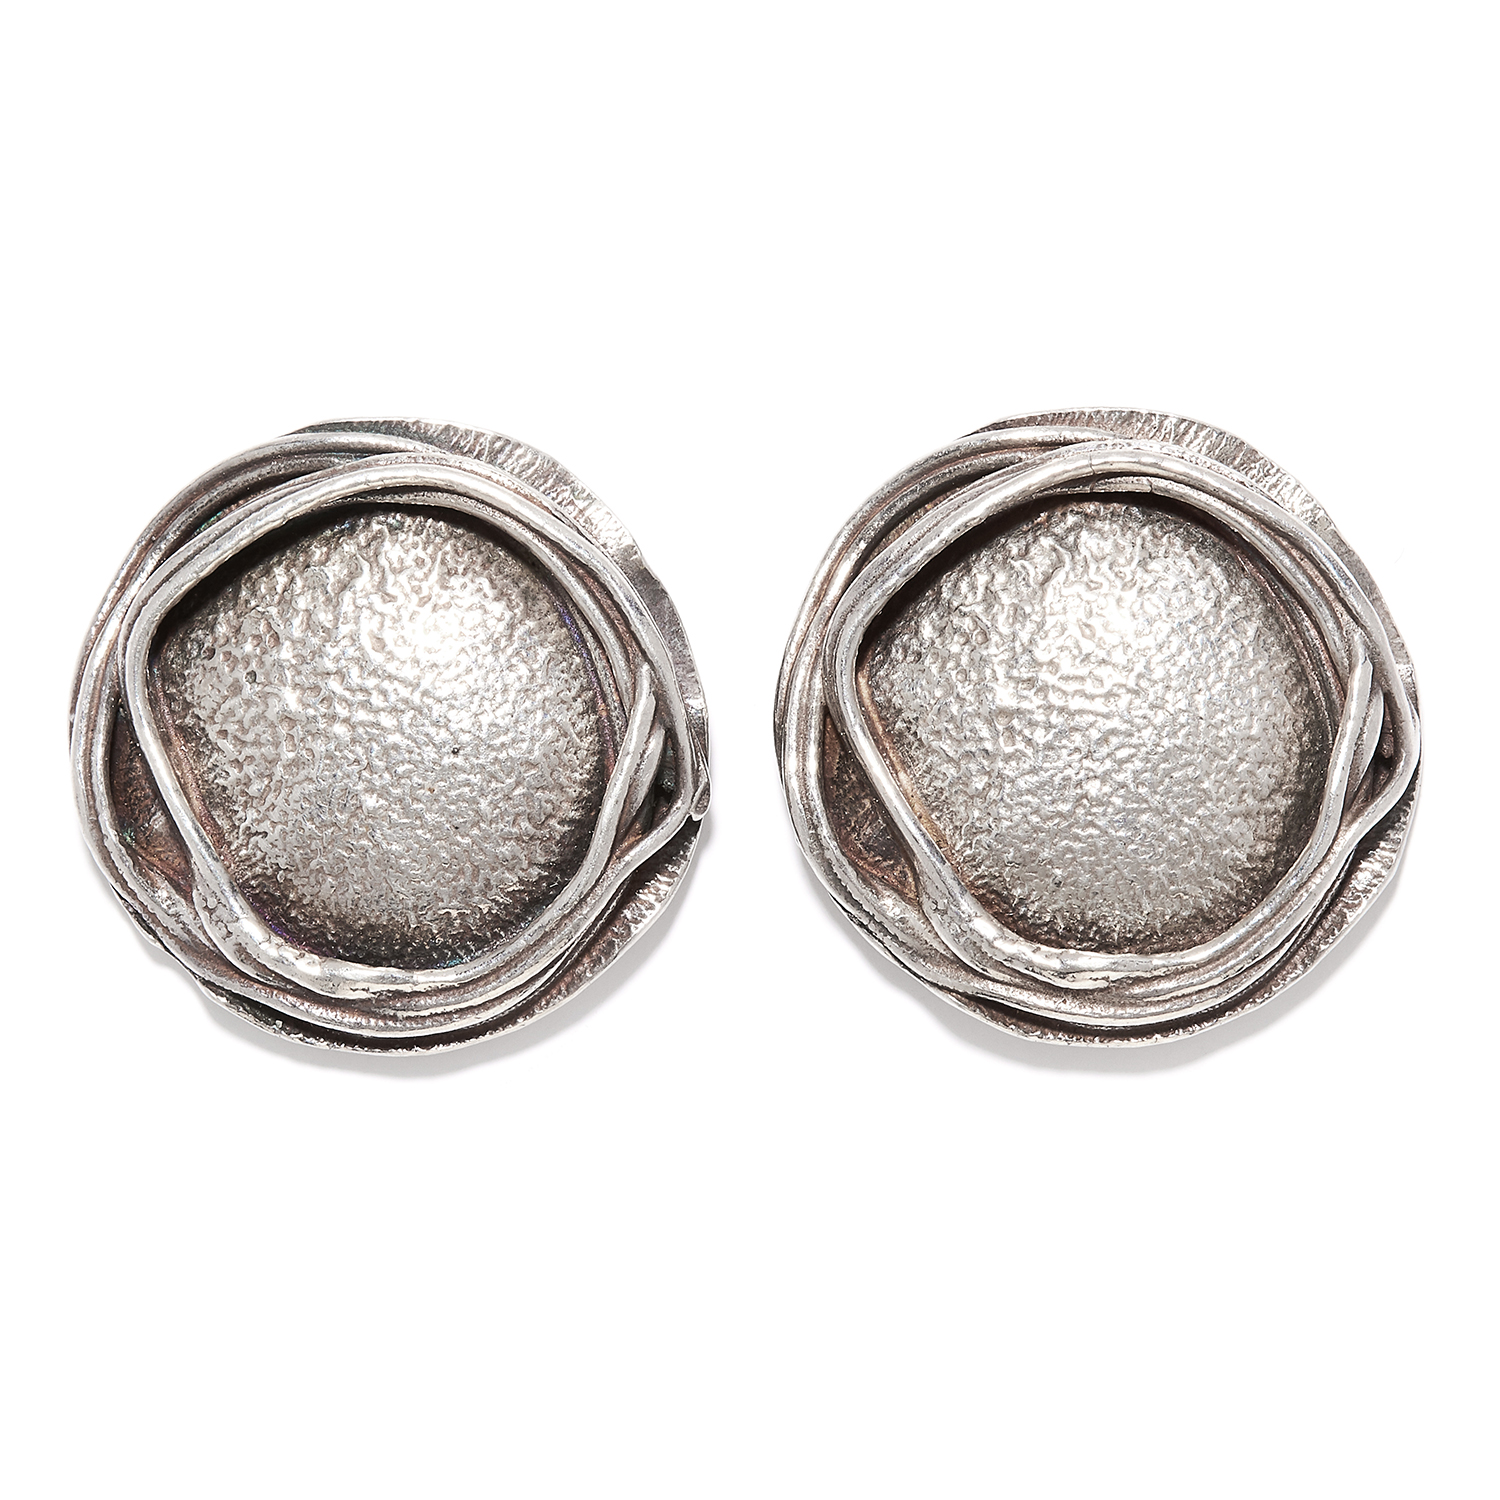 A PAIR OF SILVER EARRINGS in sterling silver, in abstract circular form, unmarked, 2cm, 7.98g.